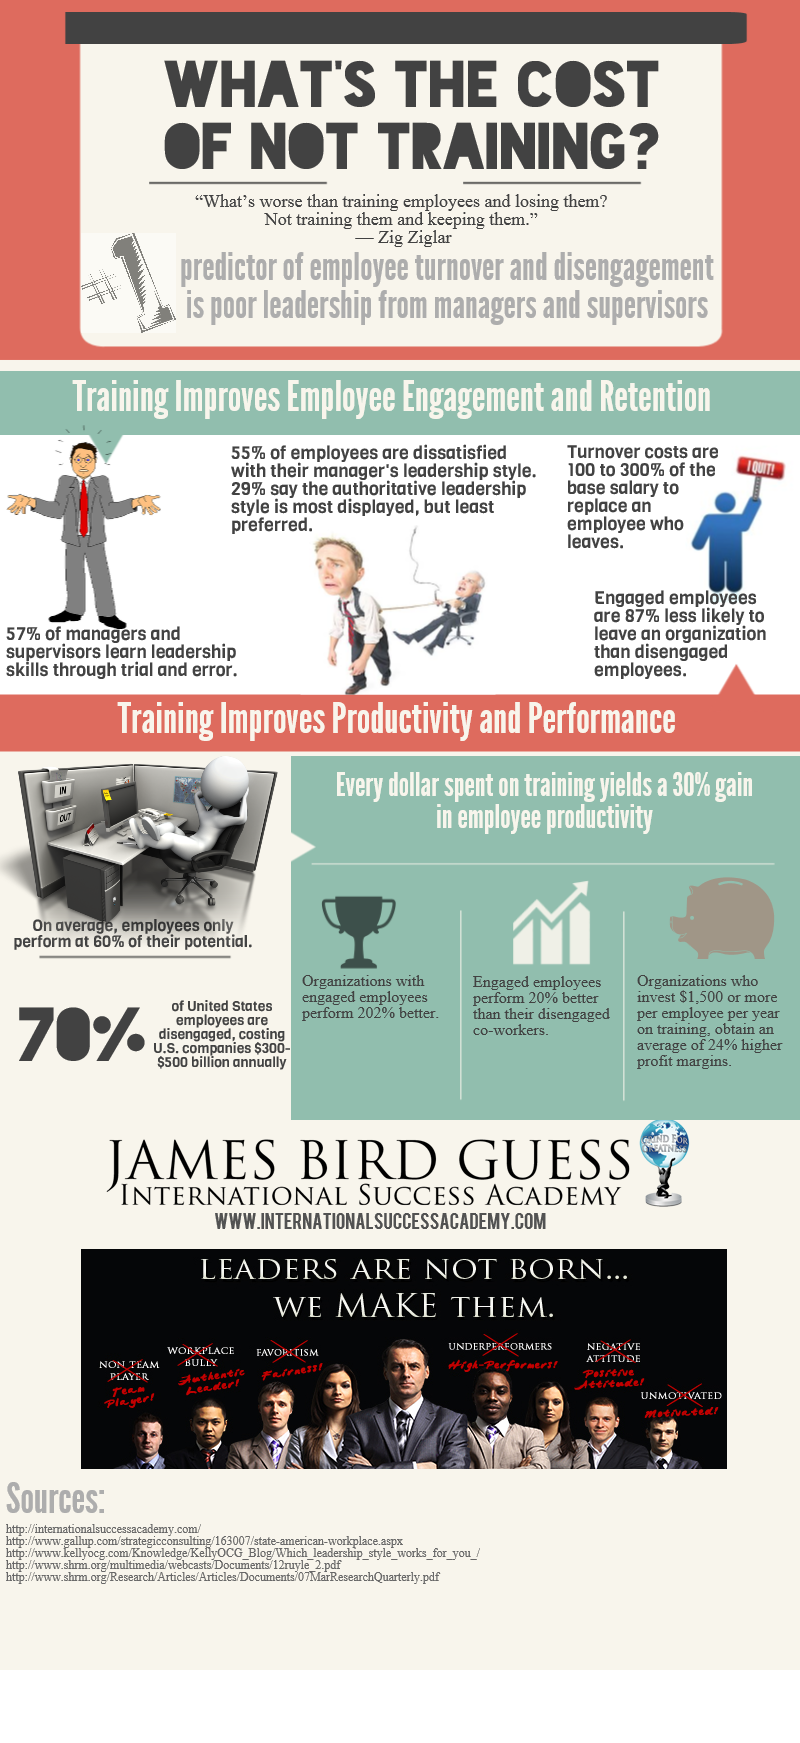 Whats The Cost of Not Training, James Bird Guess Success Academy